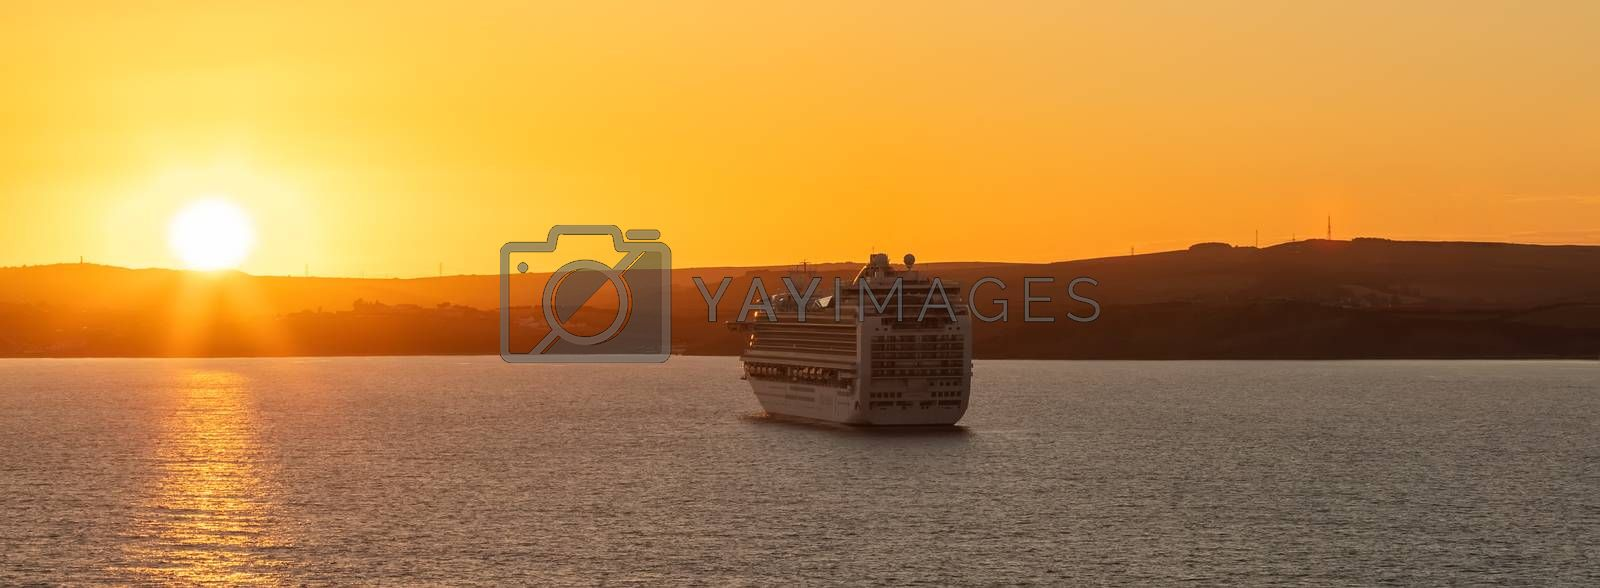 Weymouth Bay, United Kingdom - July 6, 2020: Beautiful panoramic shot of P&O cruise ship Ventura anchored in Weymouth Bay at sunset